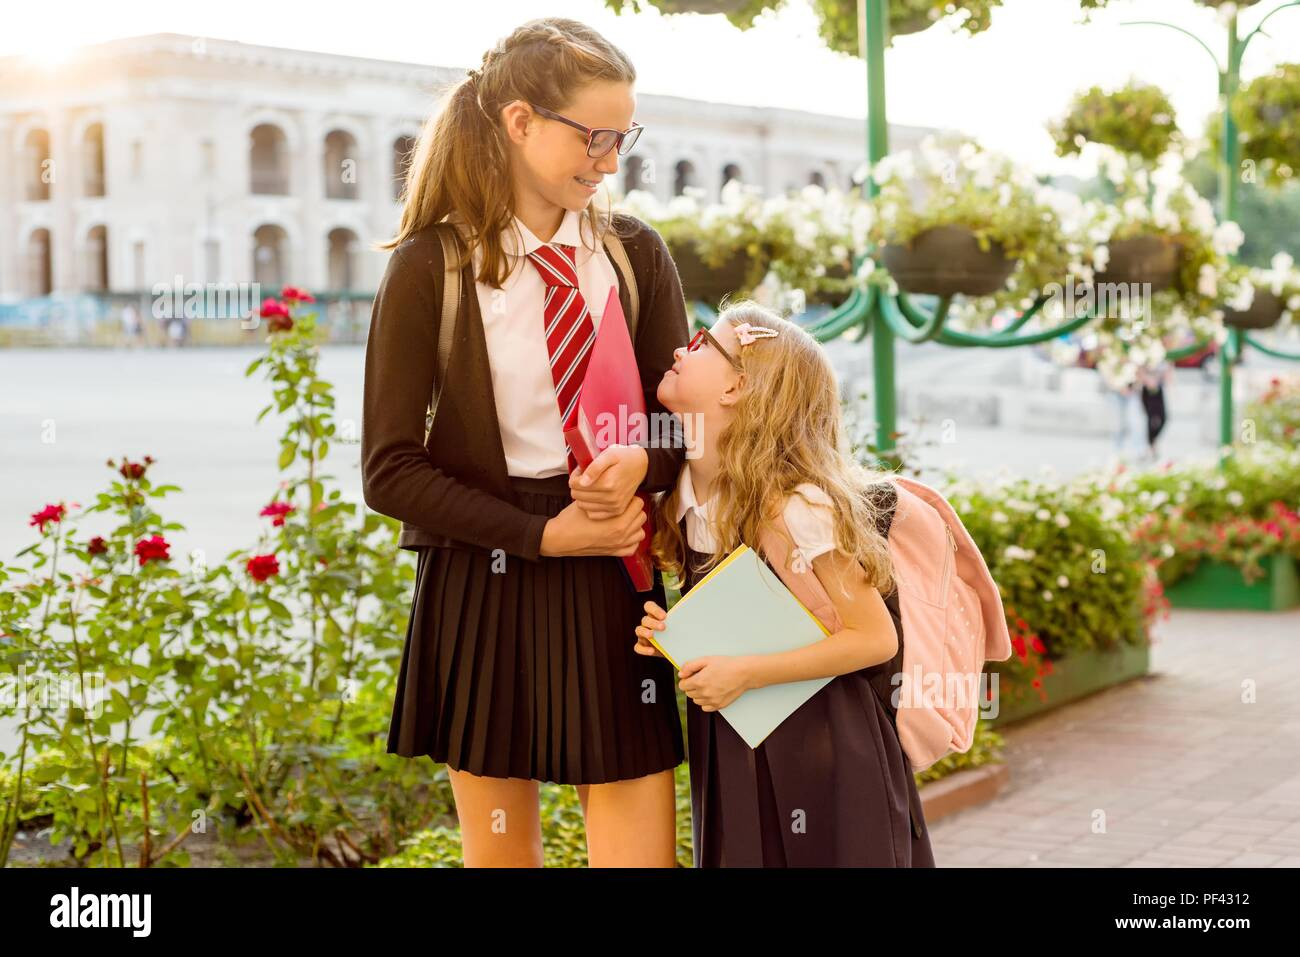 Outdoor portrait of two girls. A high school student and an elementary school student  go to school. - Stock Image